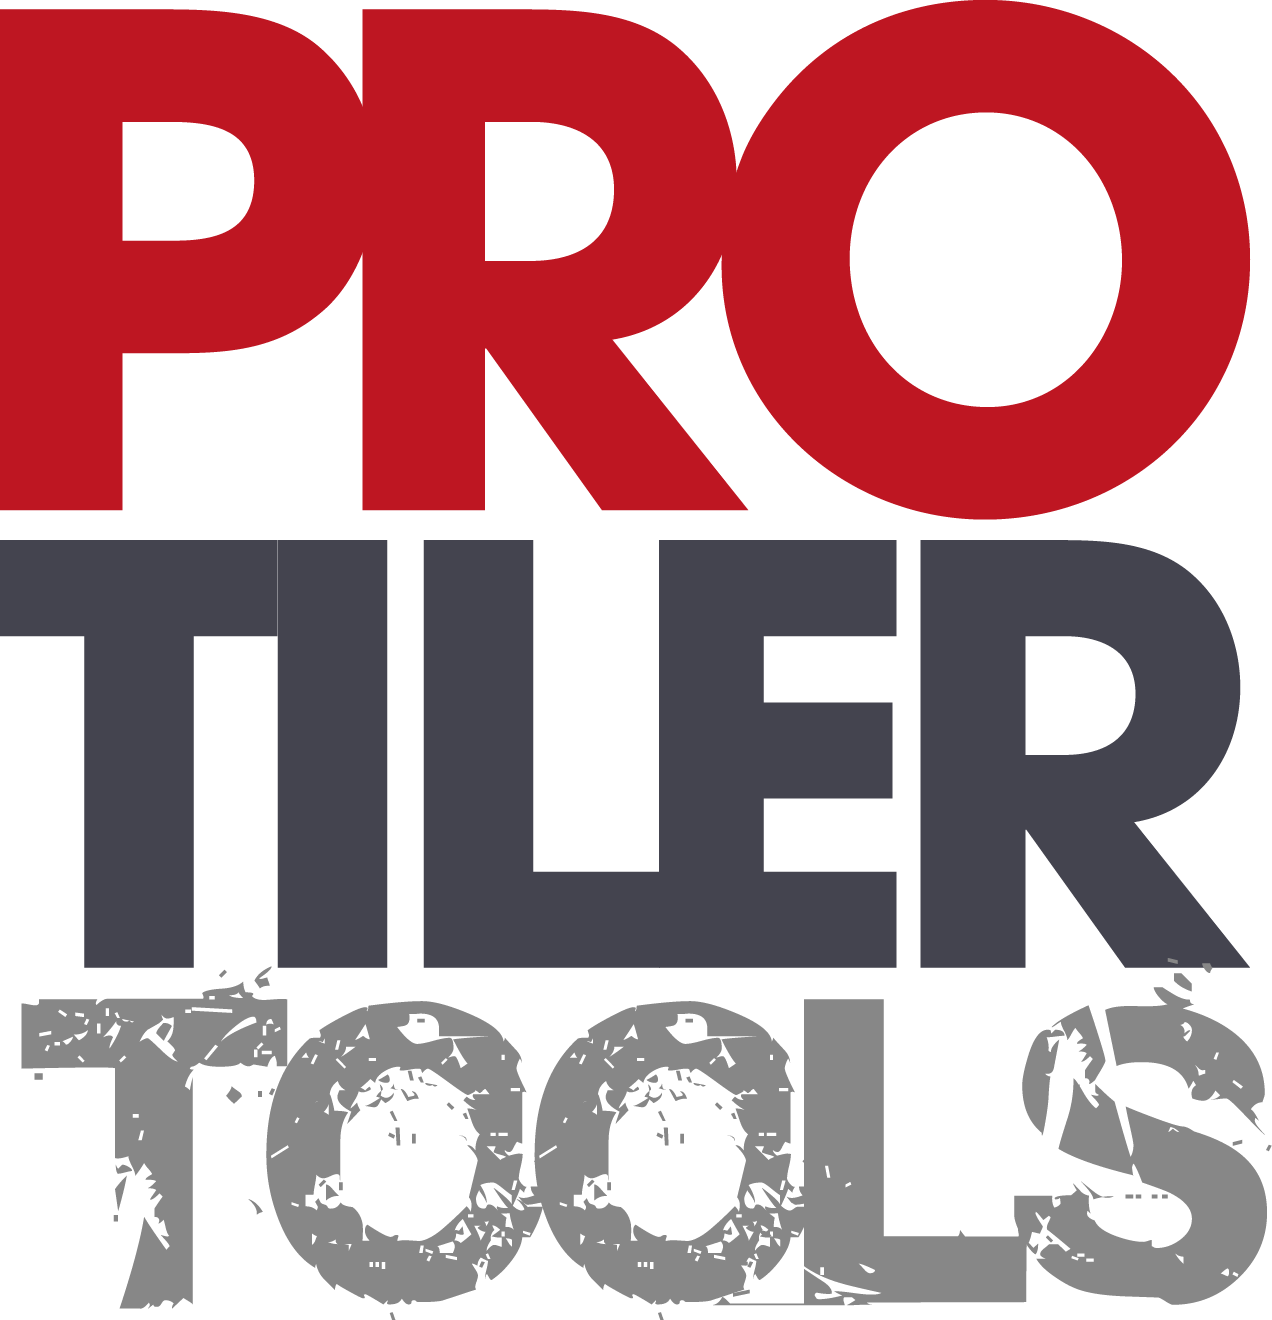 Read Pro Tiler Tools Reviews